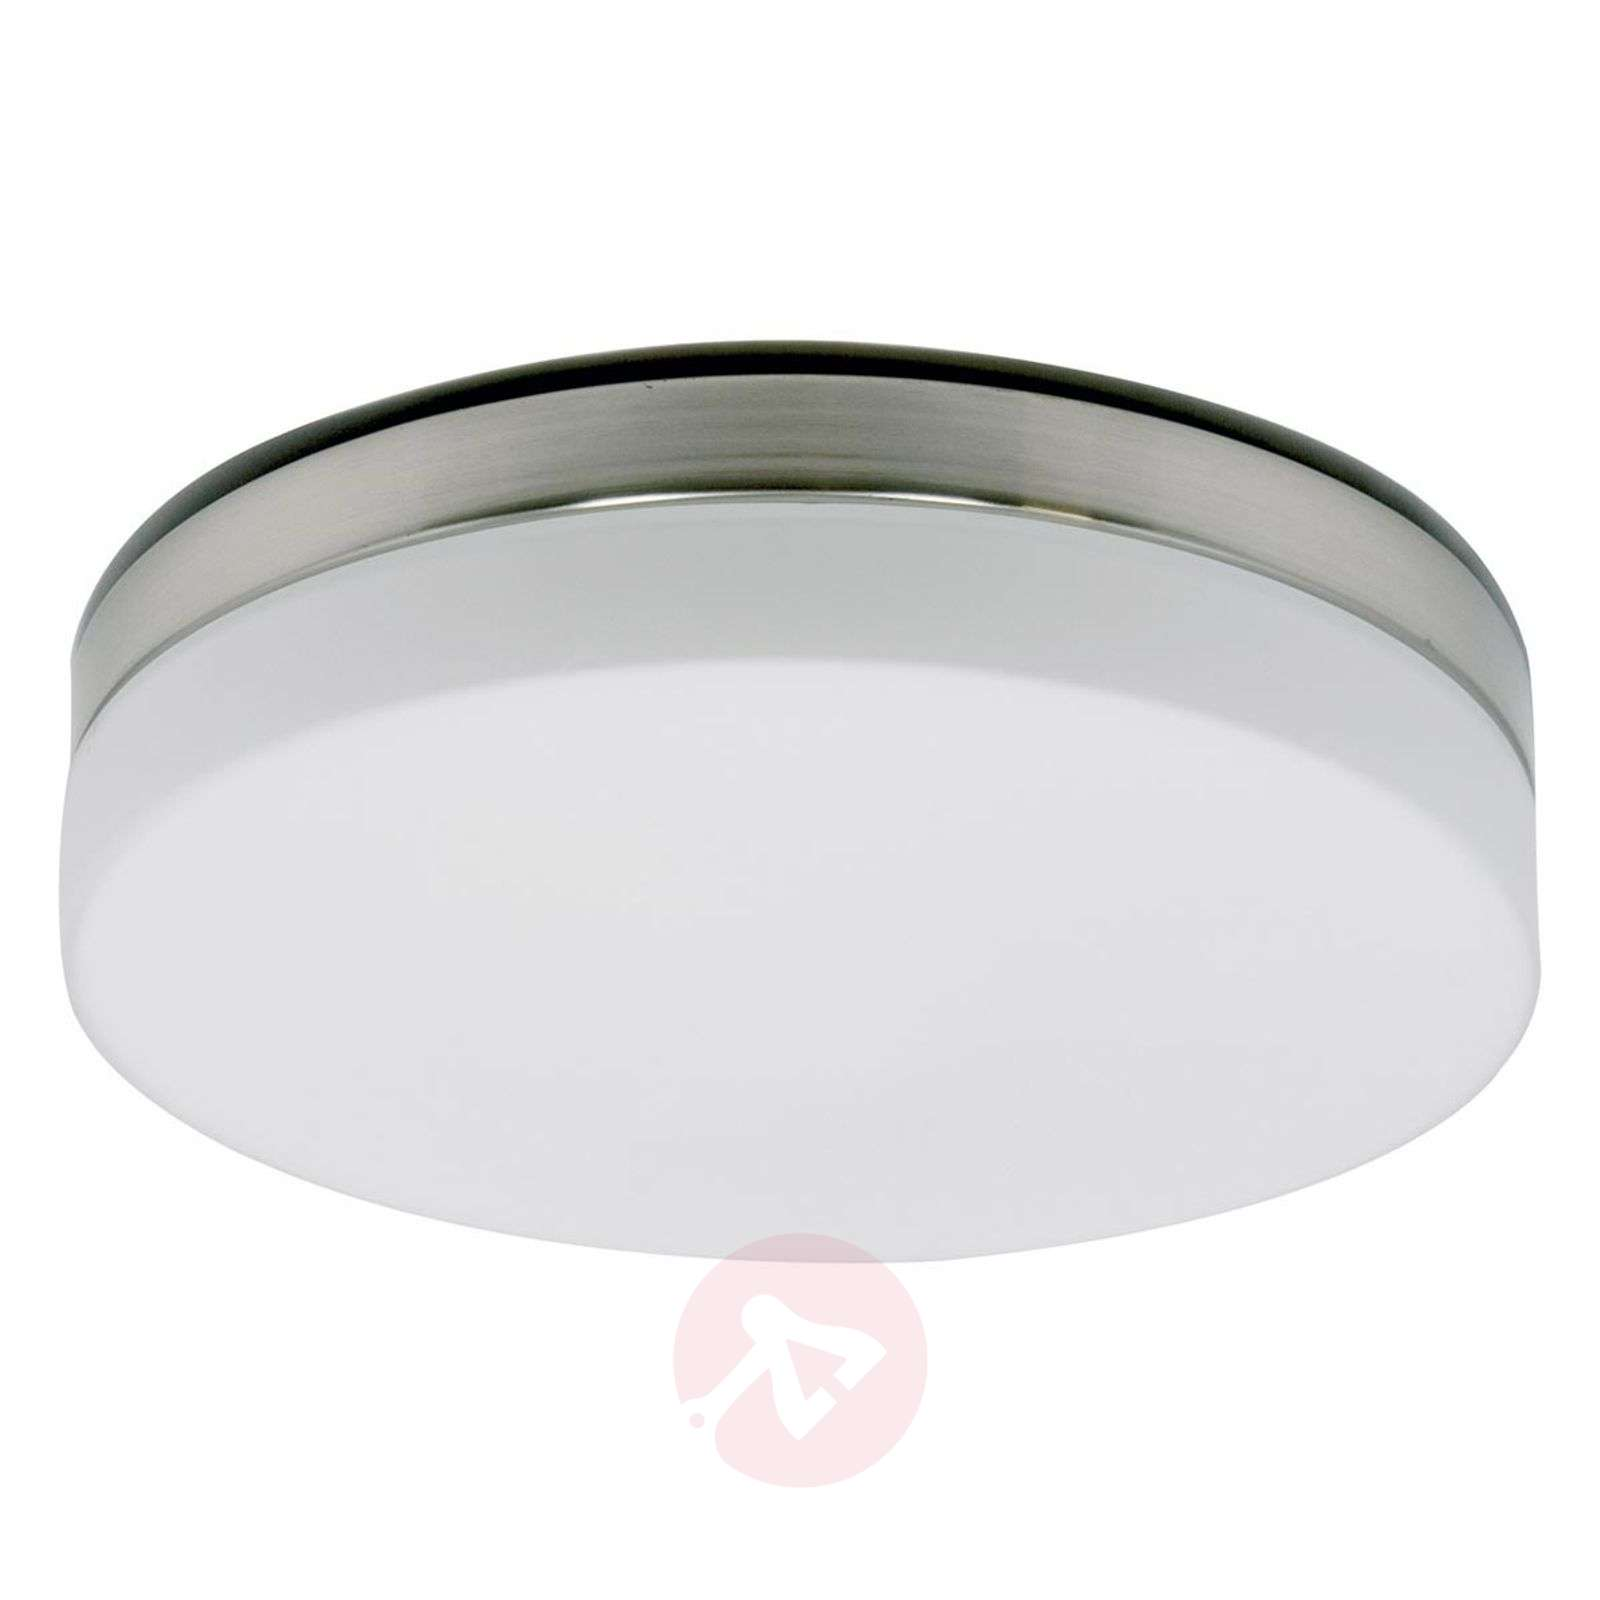 dimmable bathroom lights dimmable led bathroom ceiling light babylon 30 cm lights ie 12688